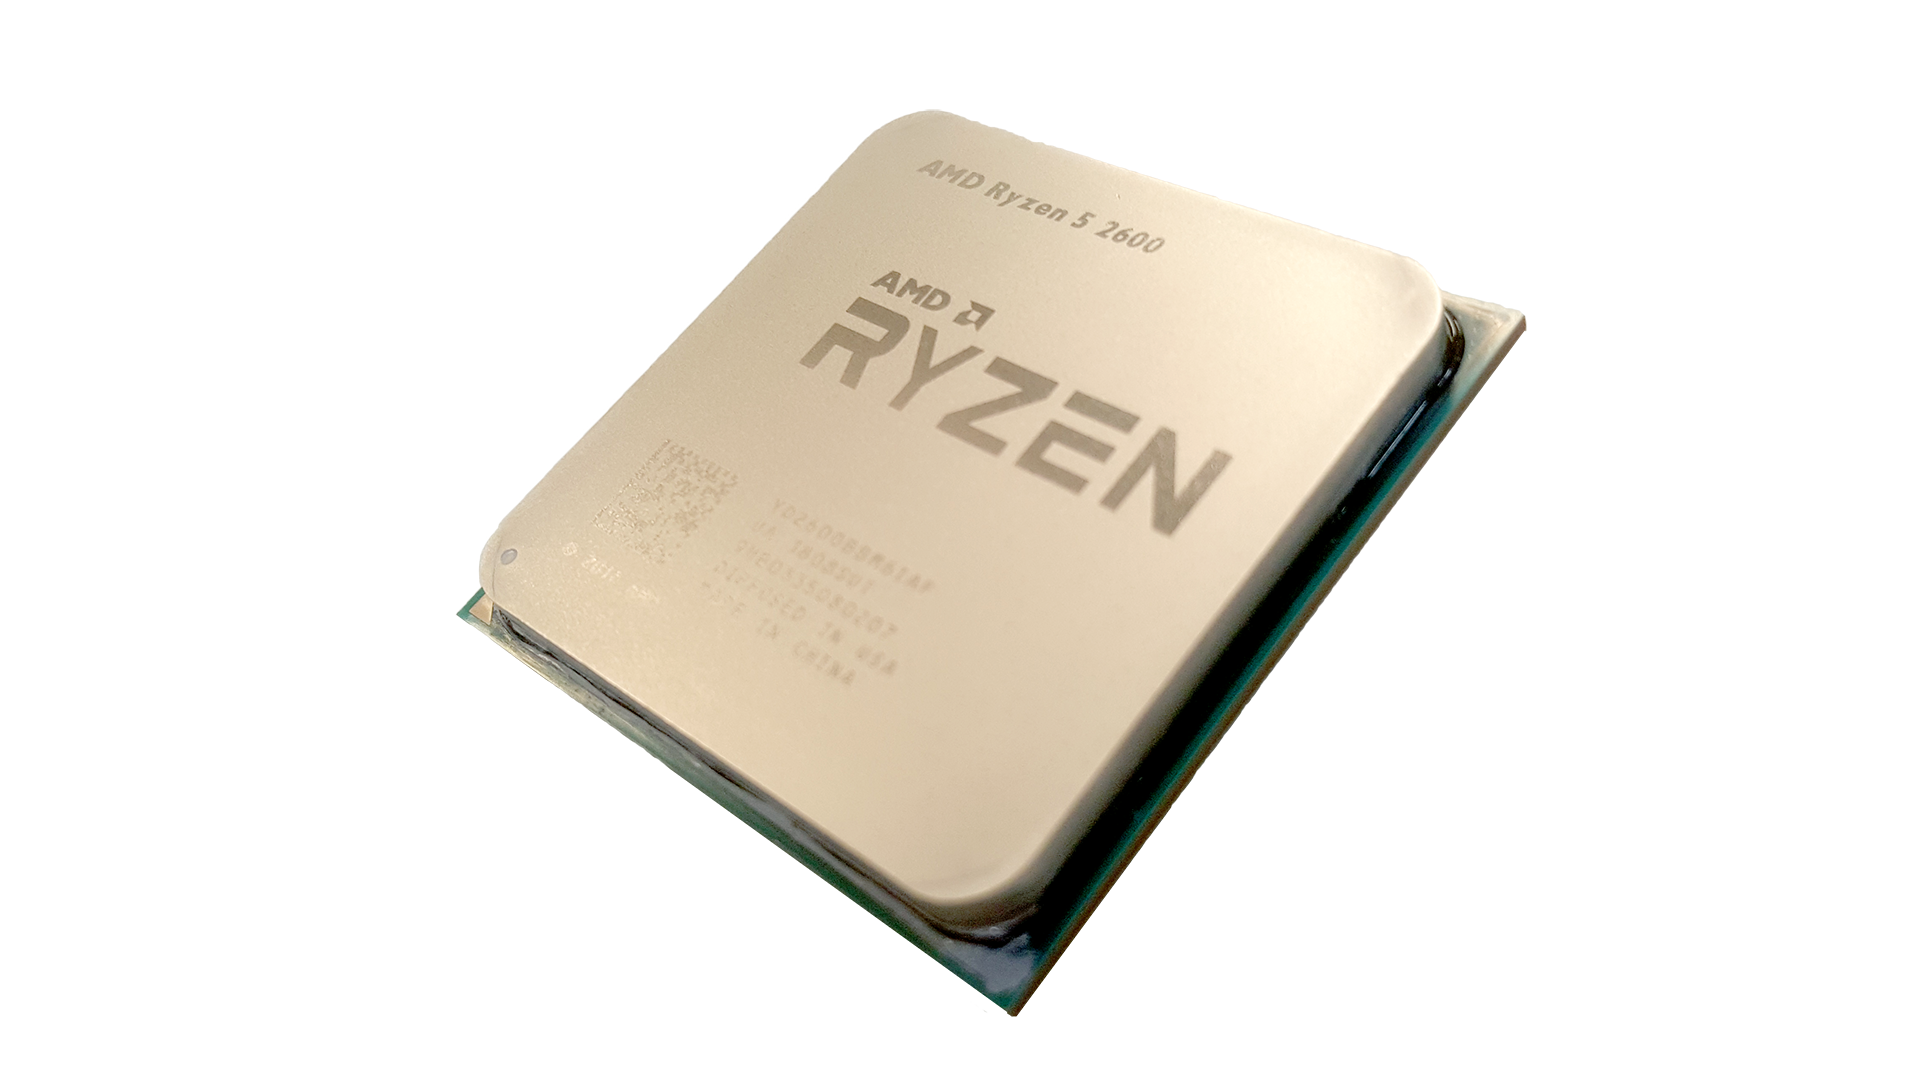 AMD Ryzen 5 2600 review: you won't miss the X from this